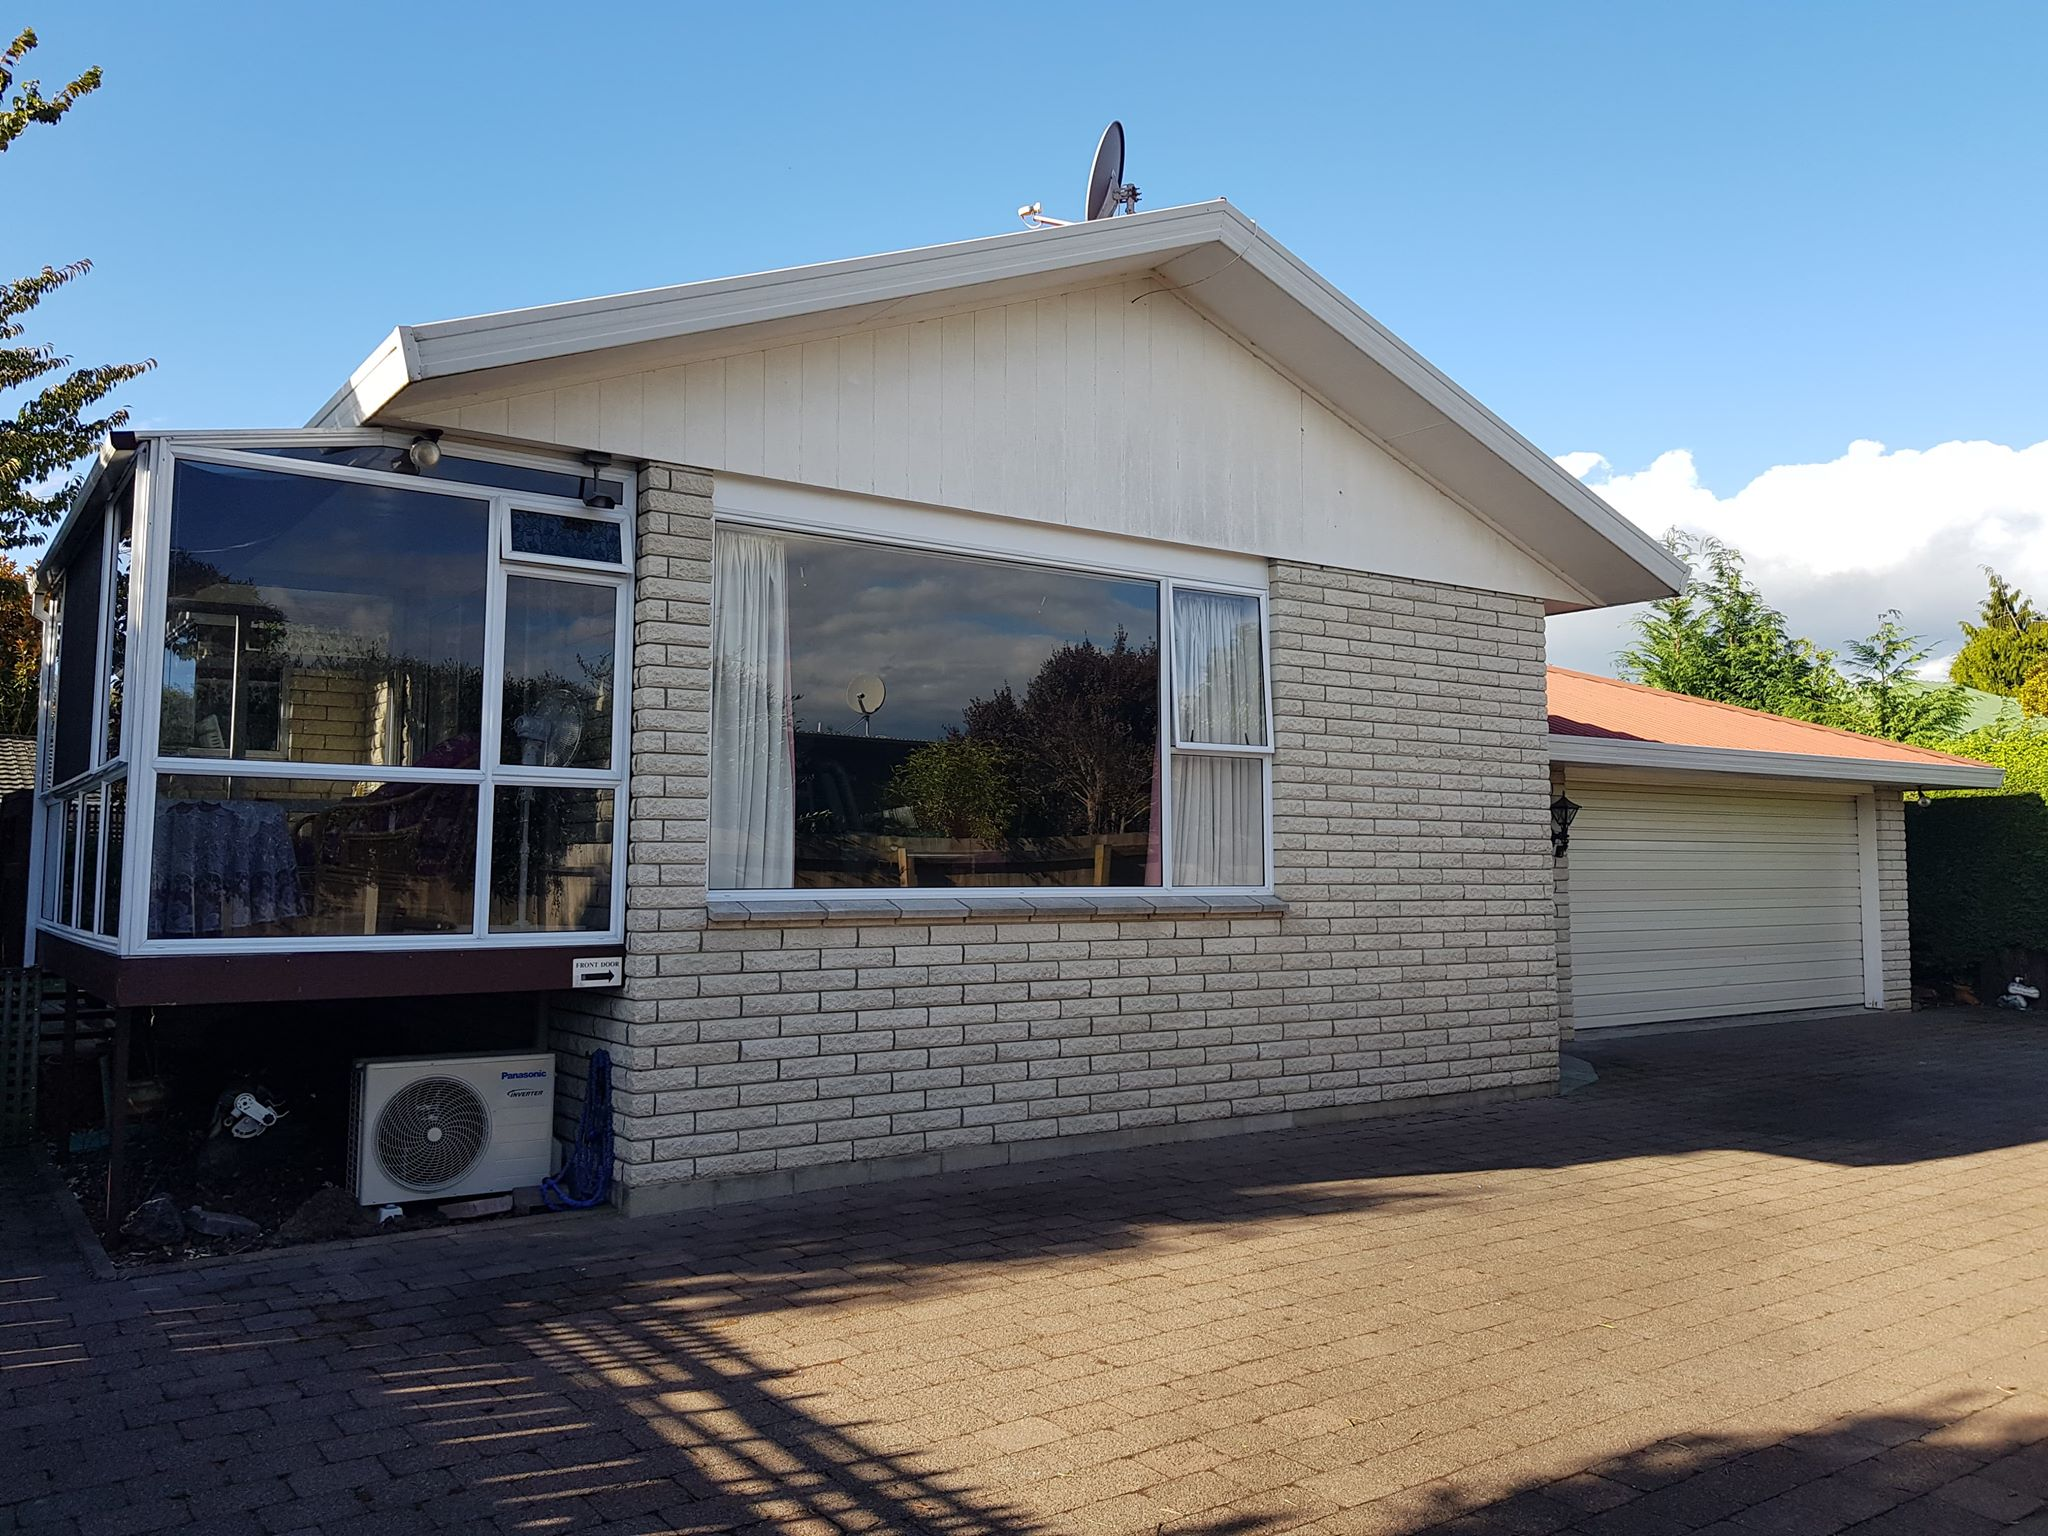 Lake taupo house for sale